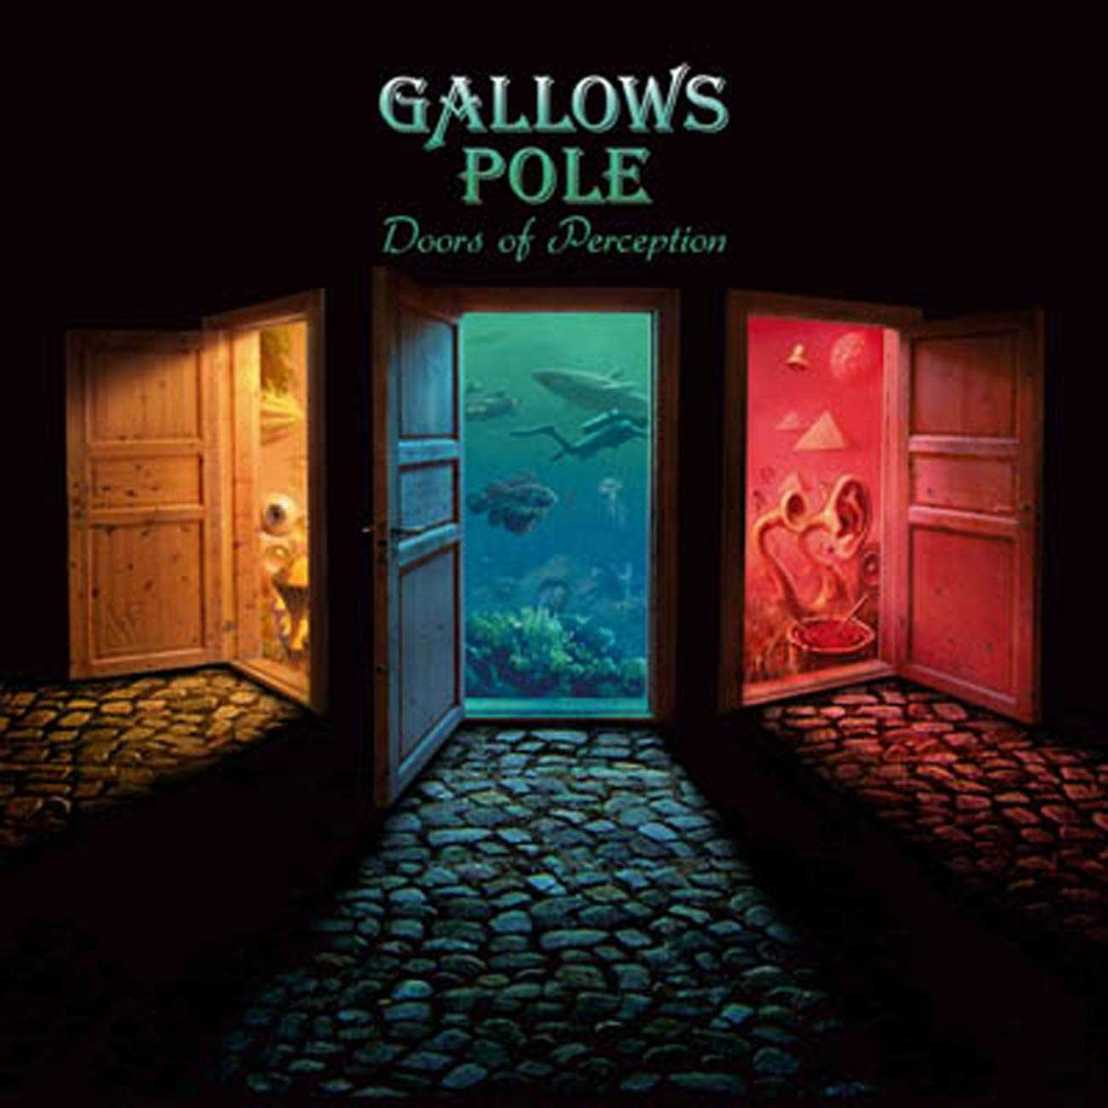 Gallows Pole - Dorrs Of Perception Artwork